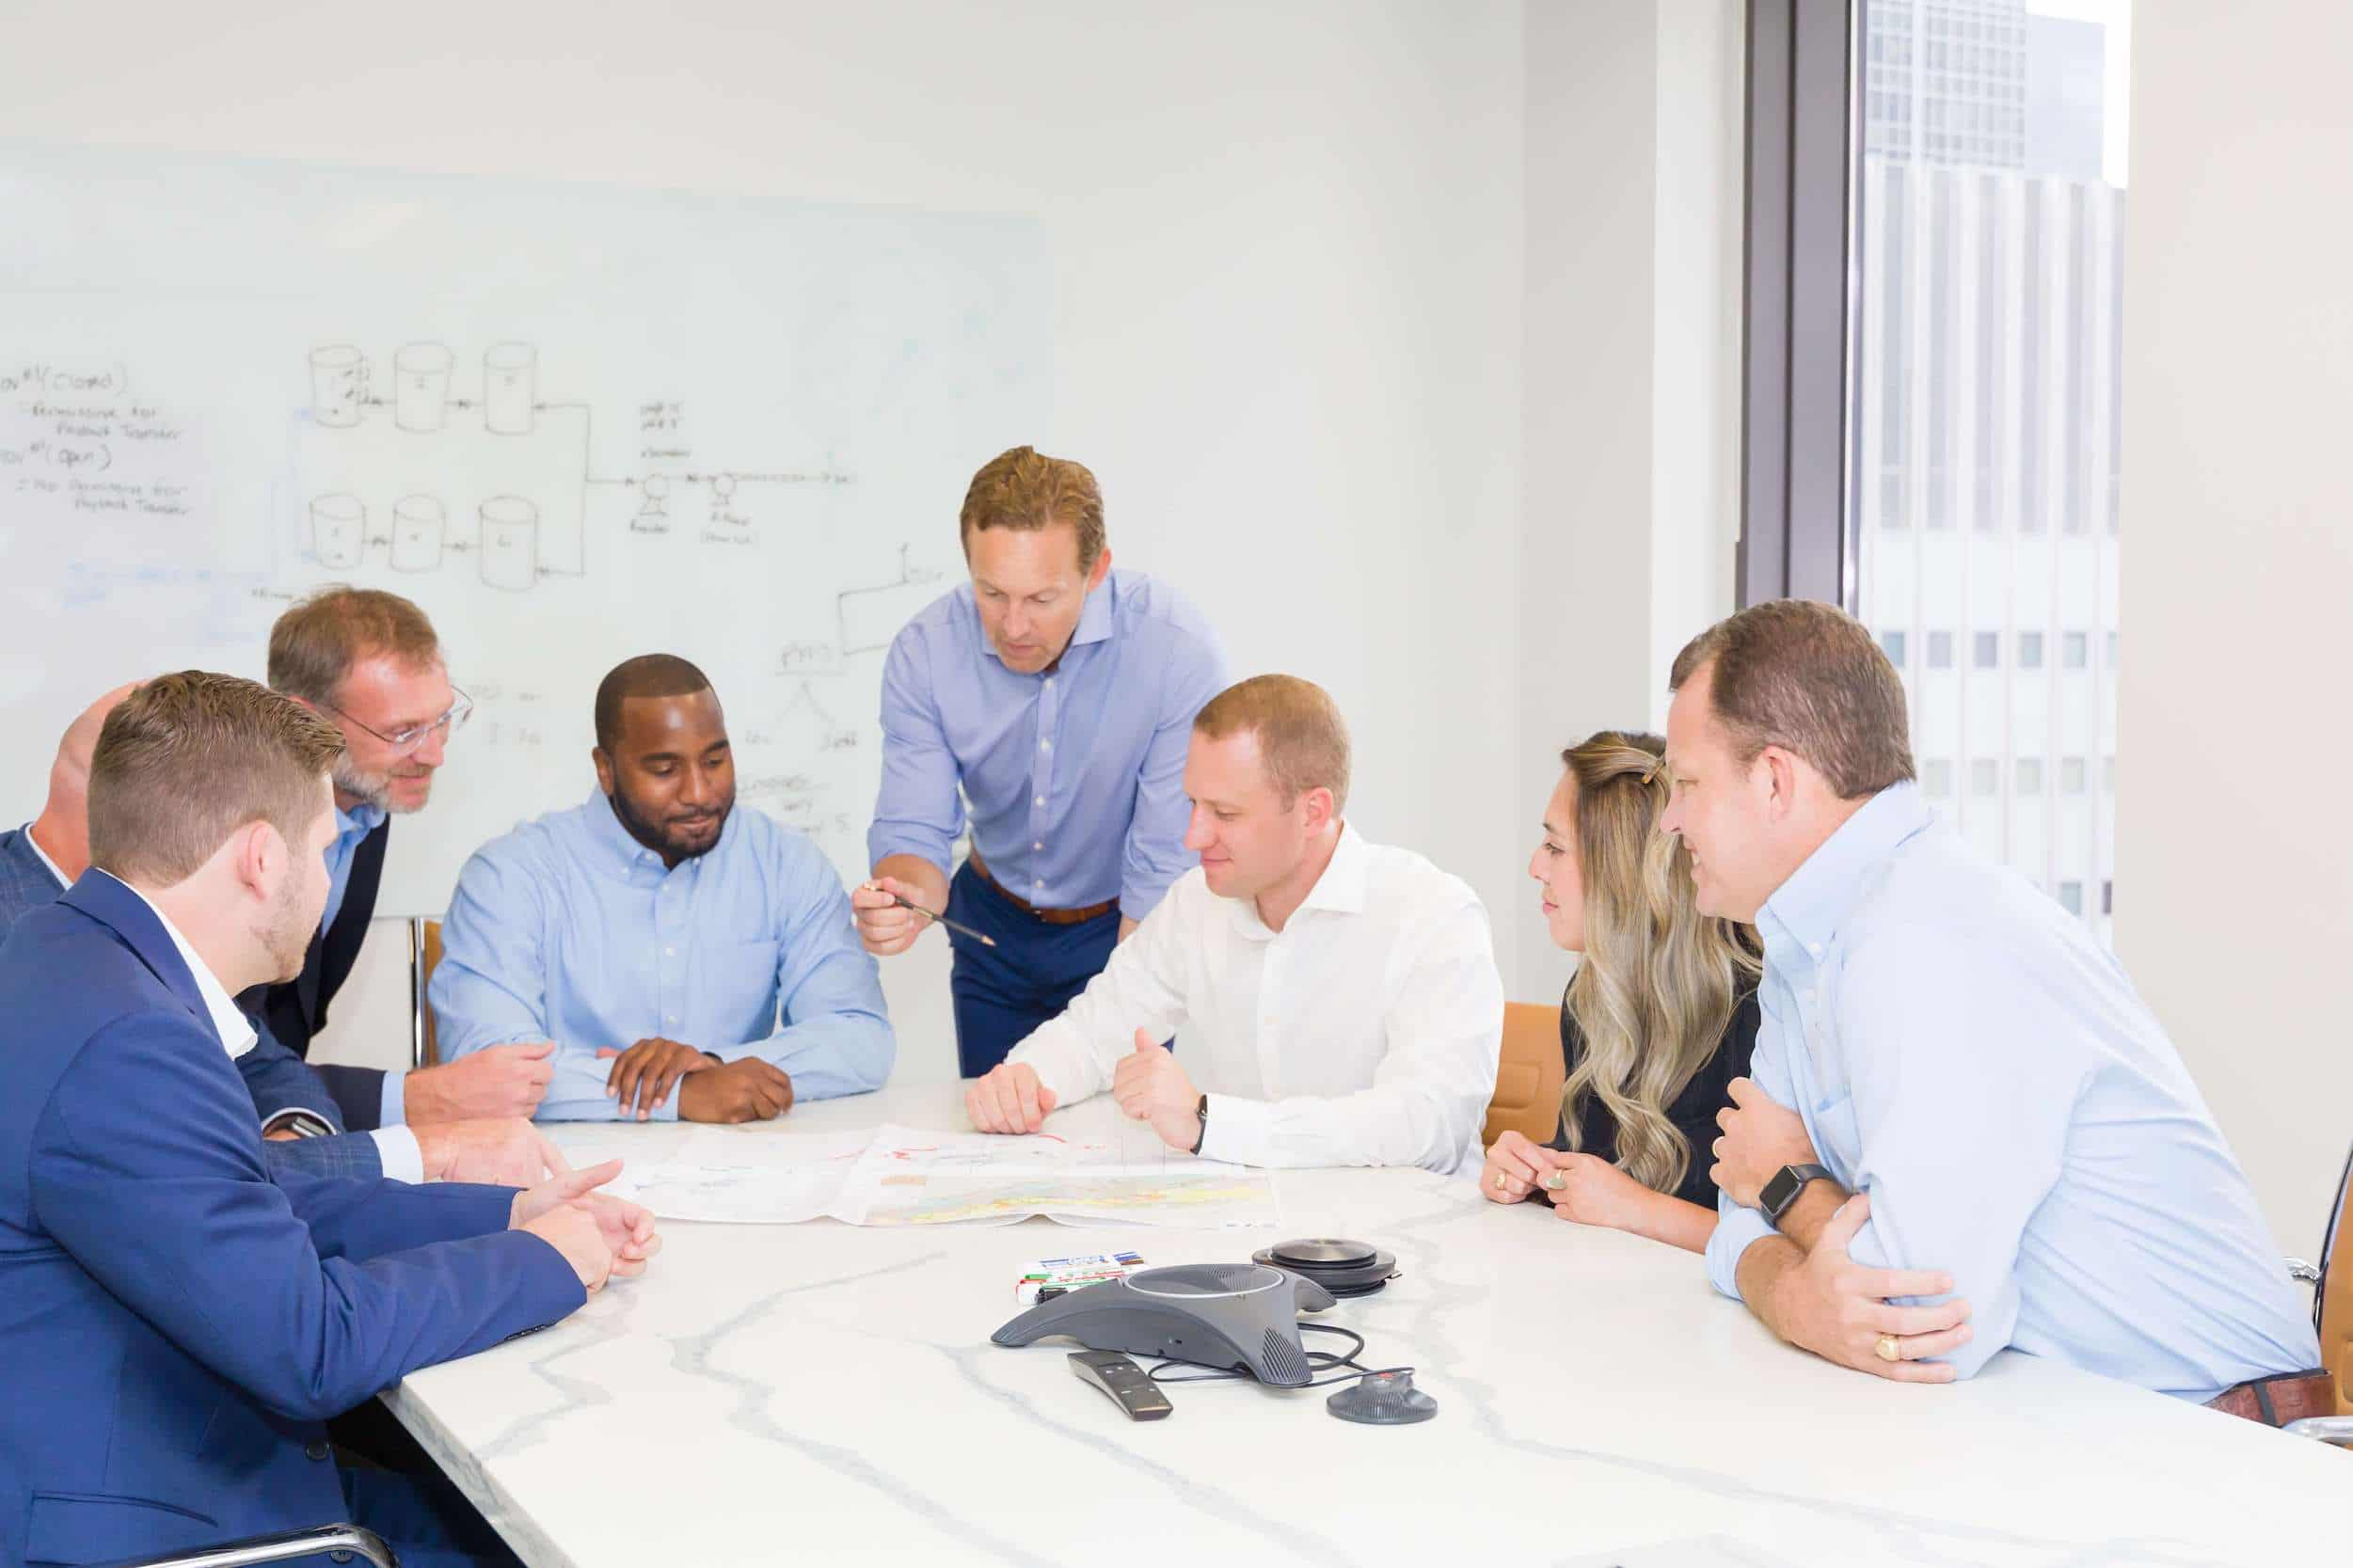 A team of eight employees seated at an office conference table reviewing documents.